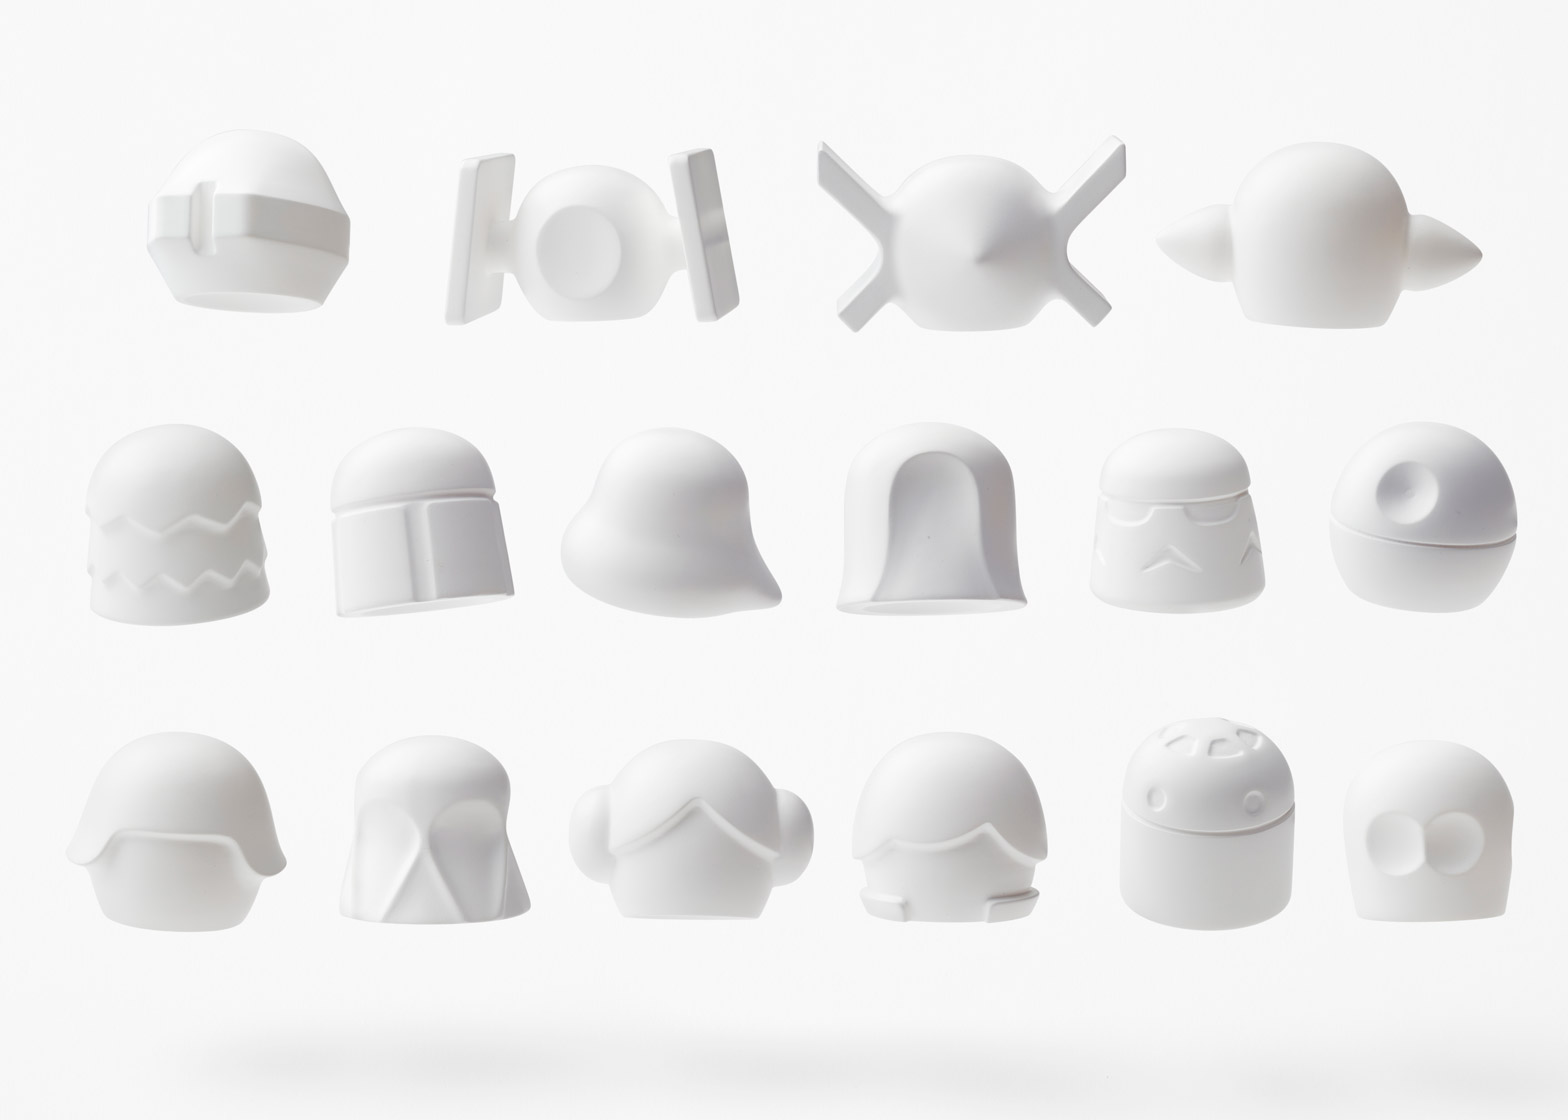 Star Wars by Nendo